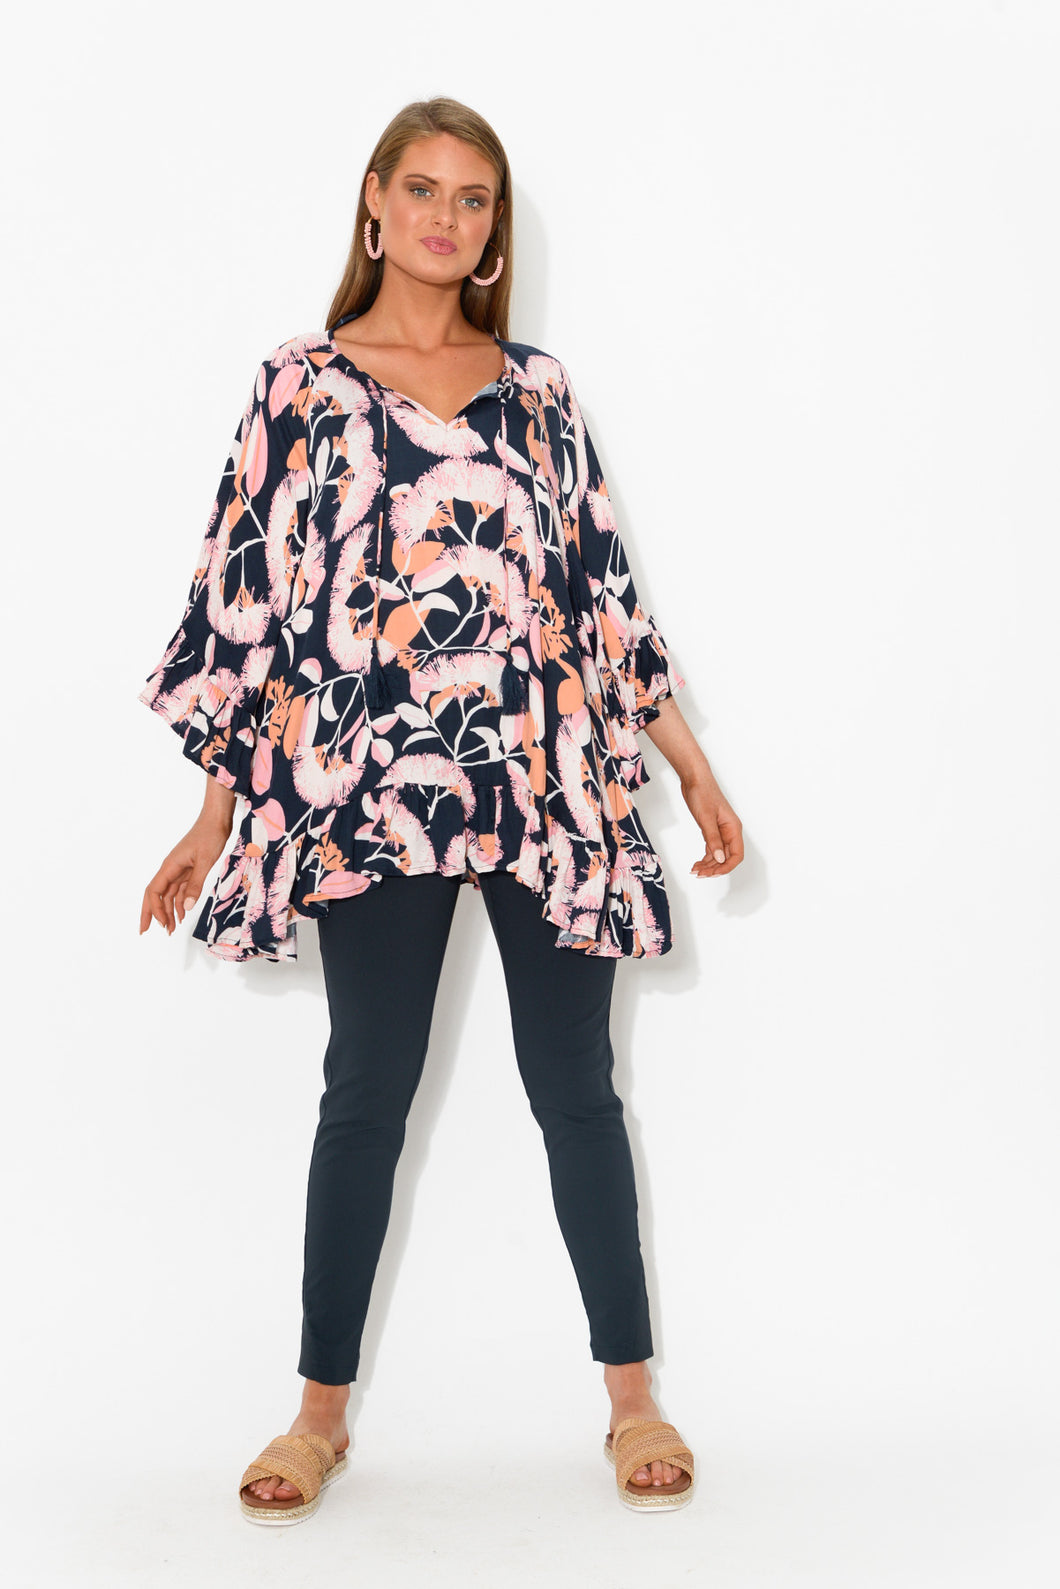 Elyse Navy Floral Ruffle Top - Blue Bungalow